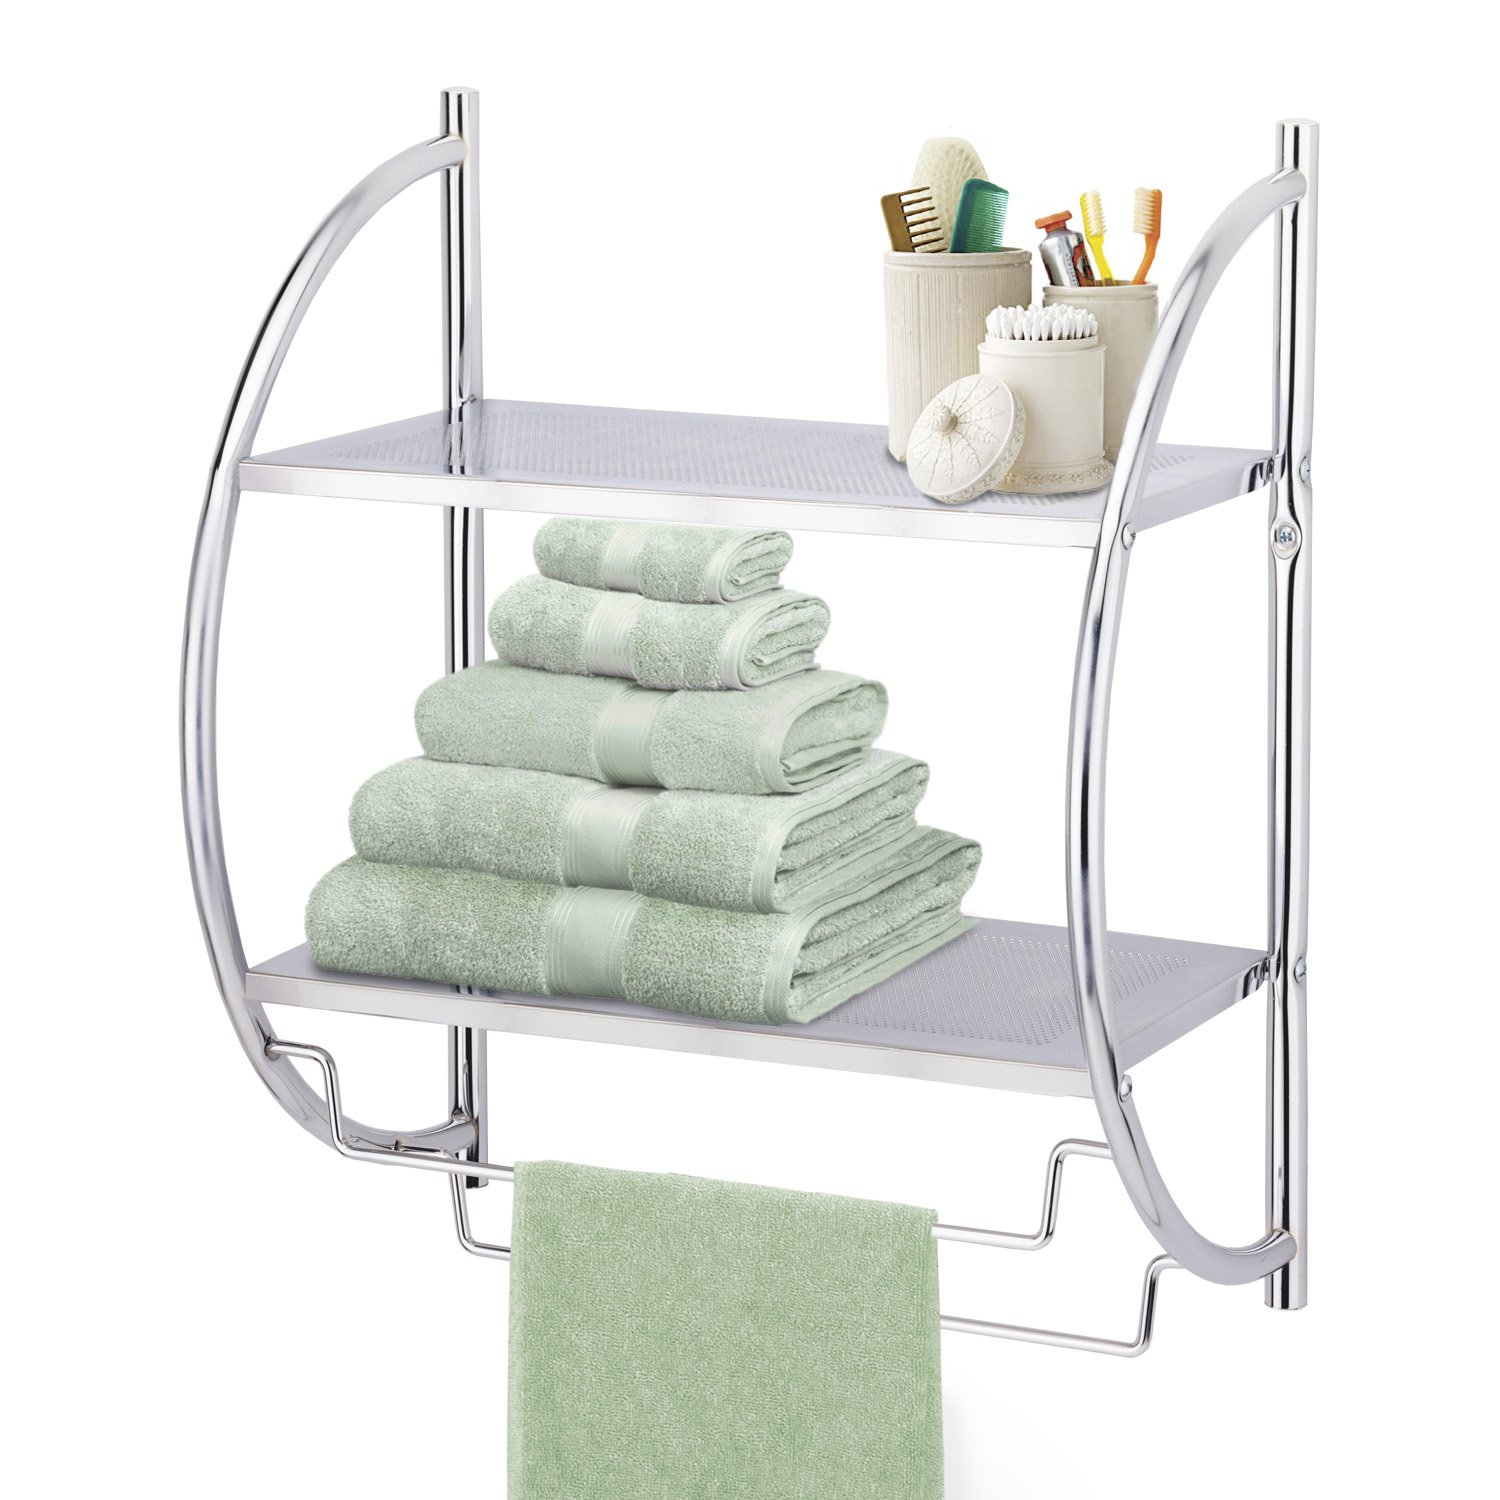 accessories maxswan bath bathroom rack improvement from item com shelf racks storage design home towel alibaba wall holder on in aliexpress